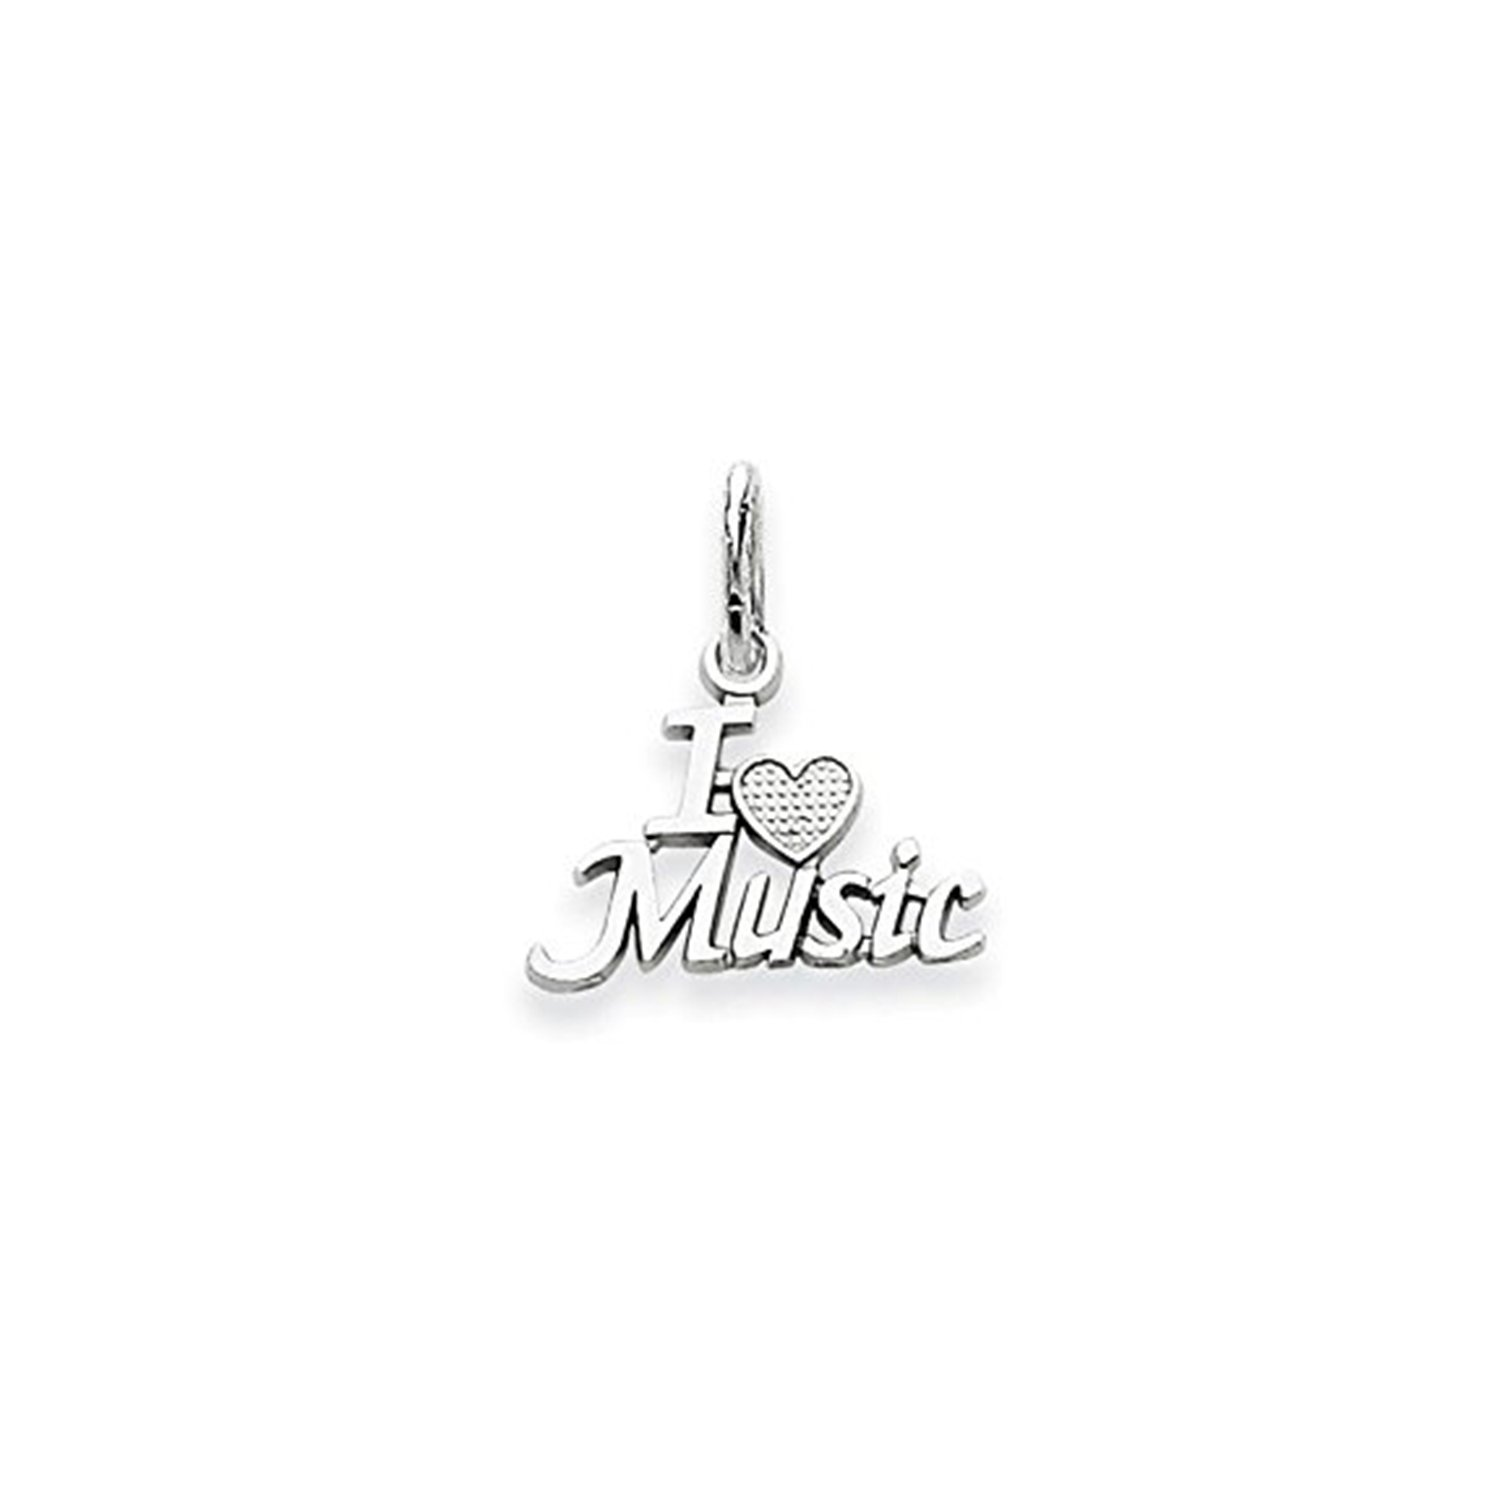 Suhana Jewellery Simulated Diamond Studded Musical Sign Pendant Necklace in 14K Yellow Gold Plated With Box Chain